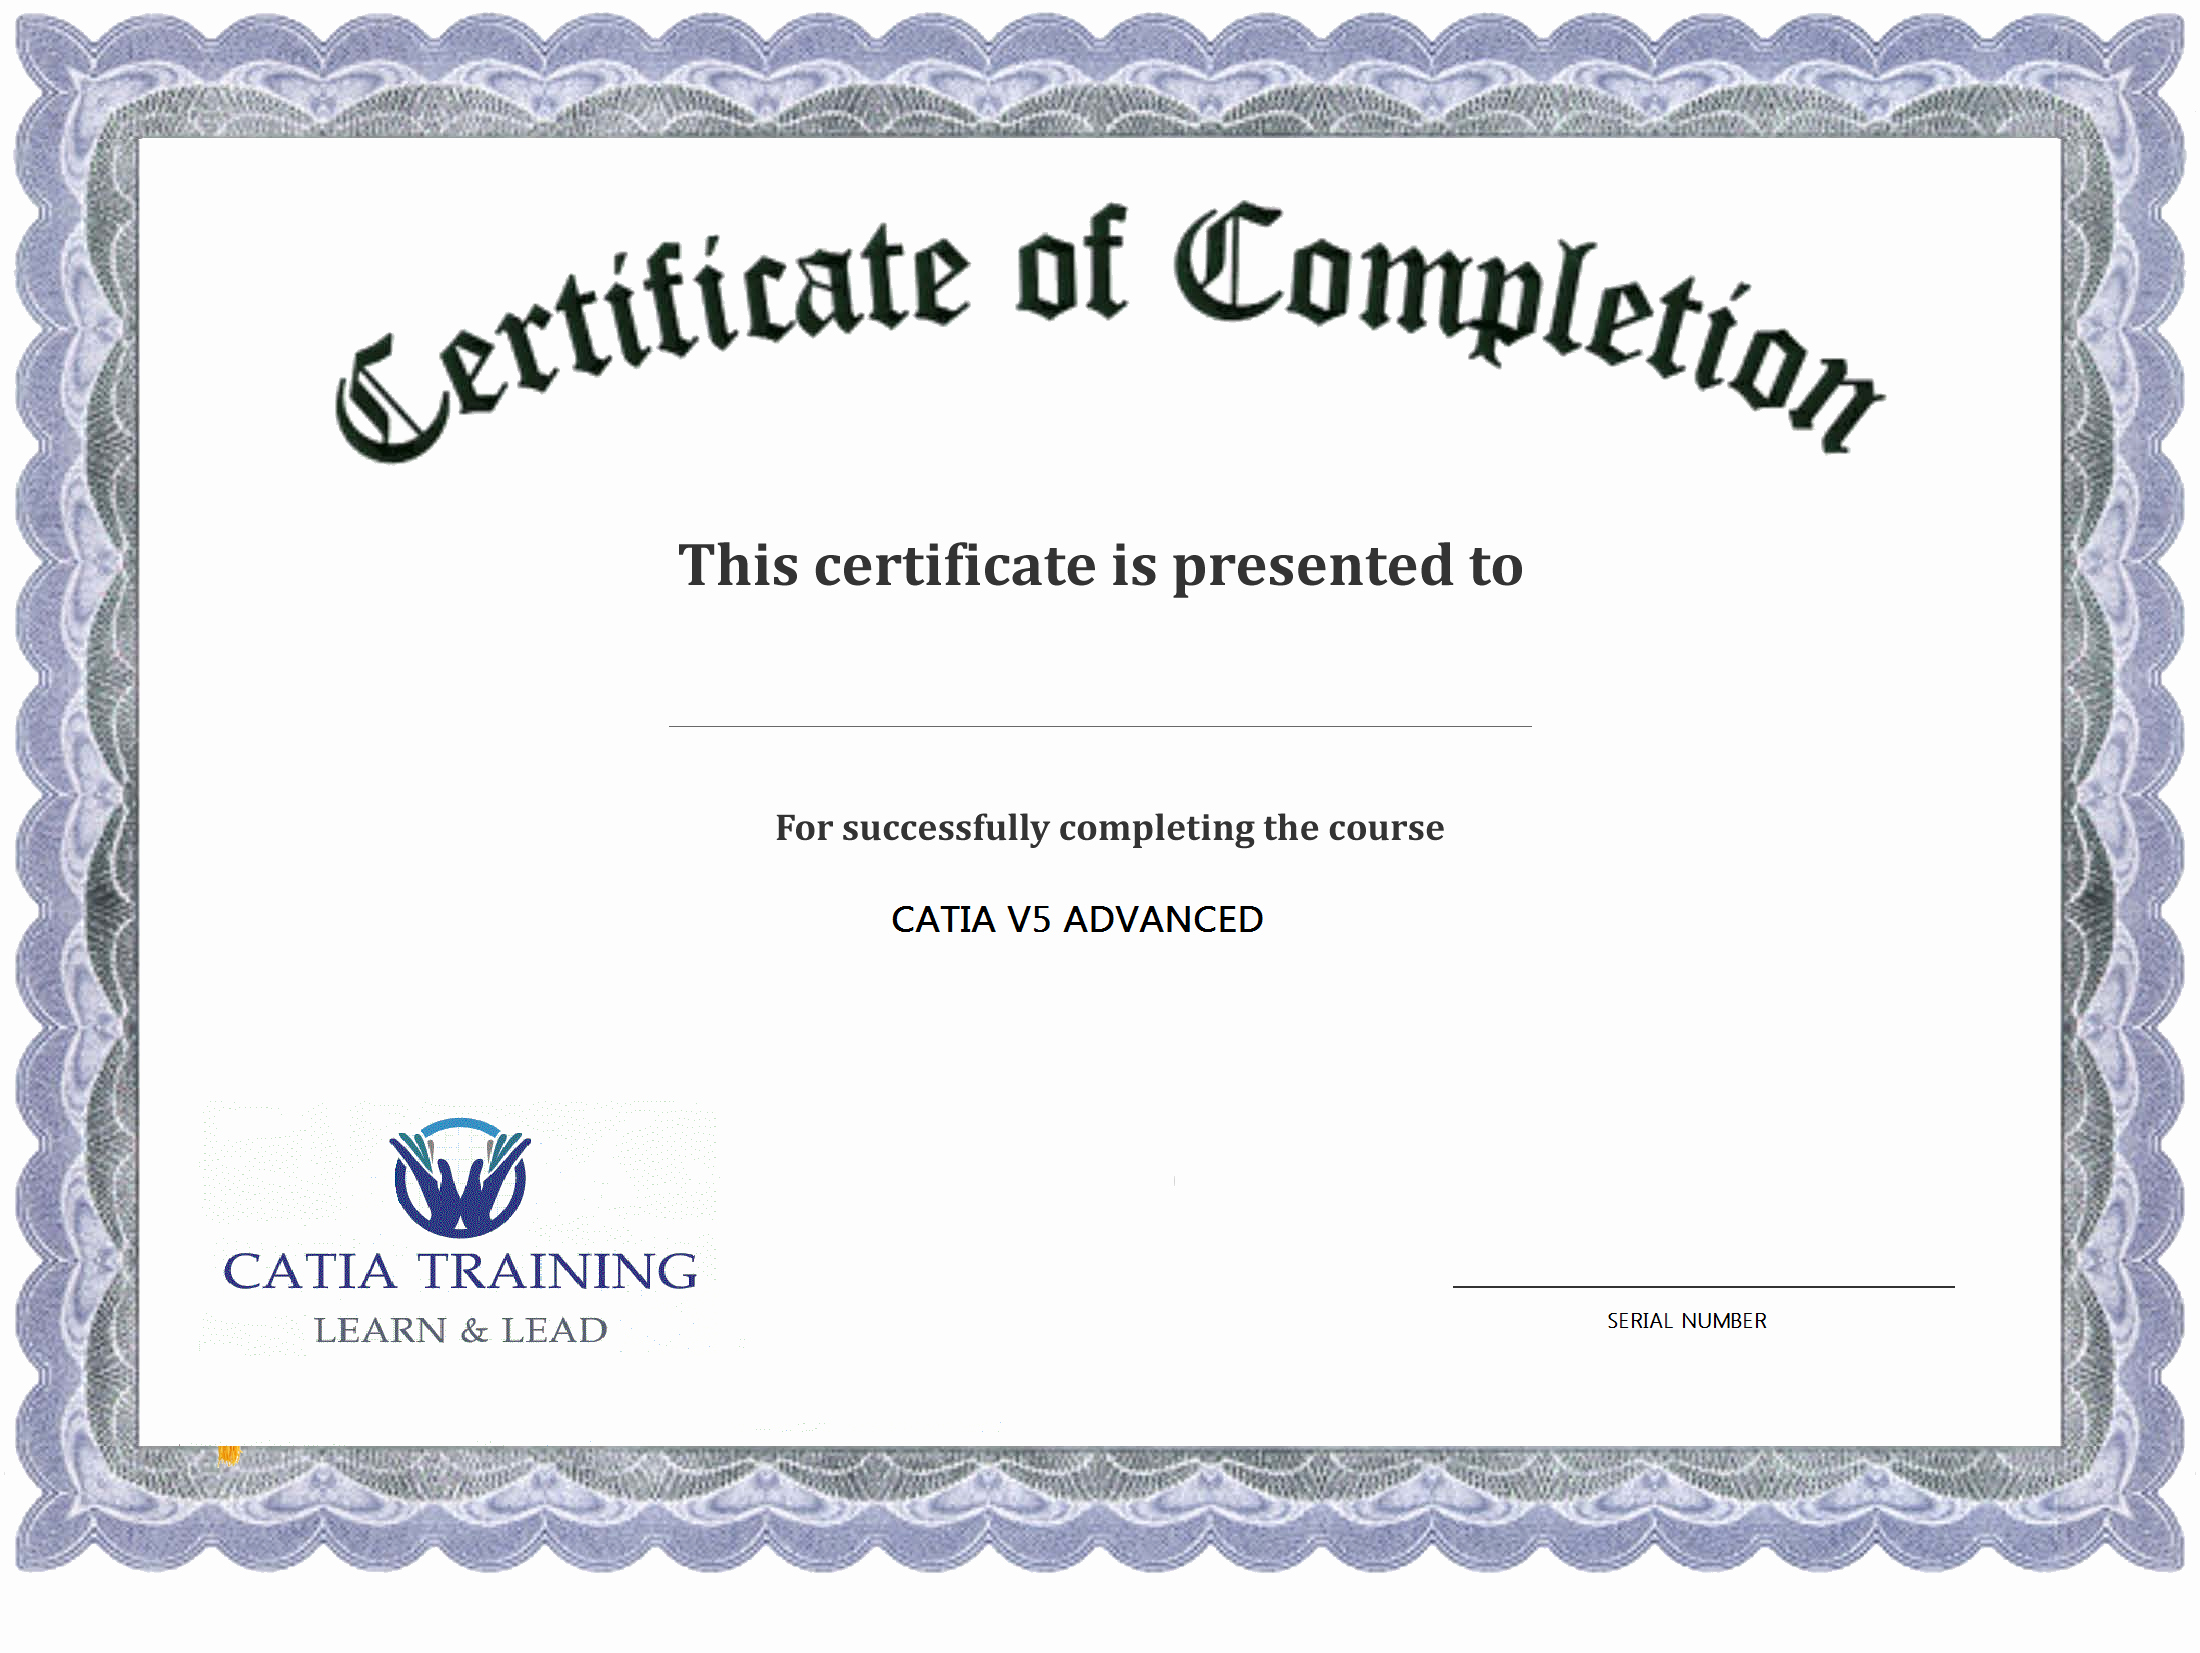 Sample Training Certificate Of Completion Best Of 13 Certificate Of Pletion Templates Excel Pdf formats